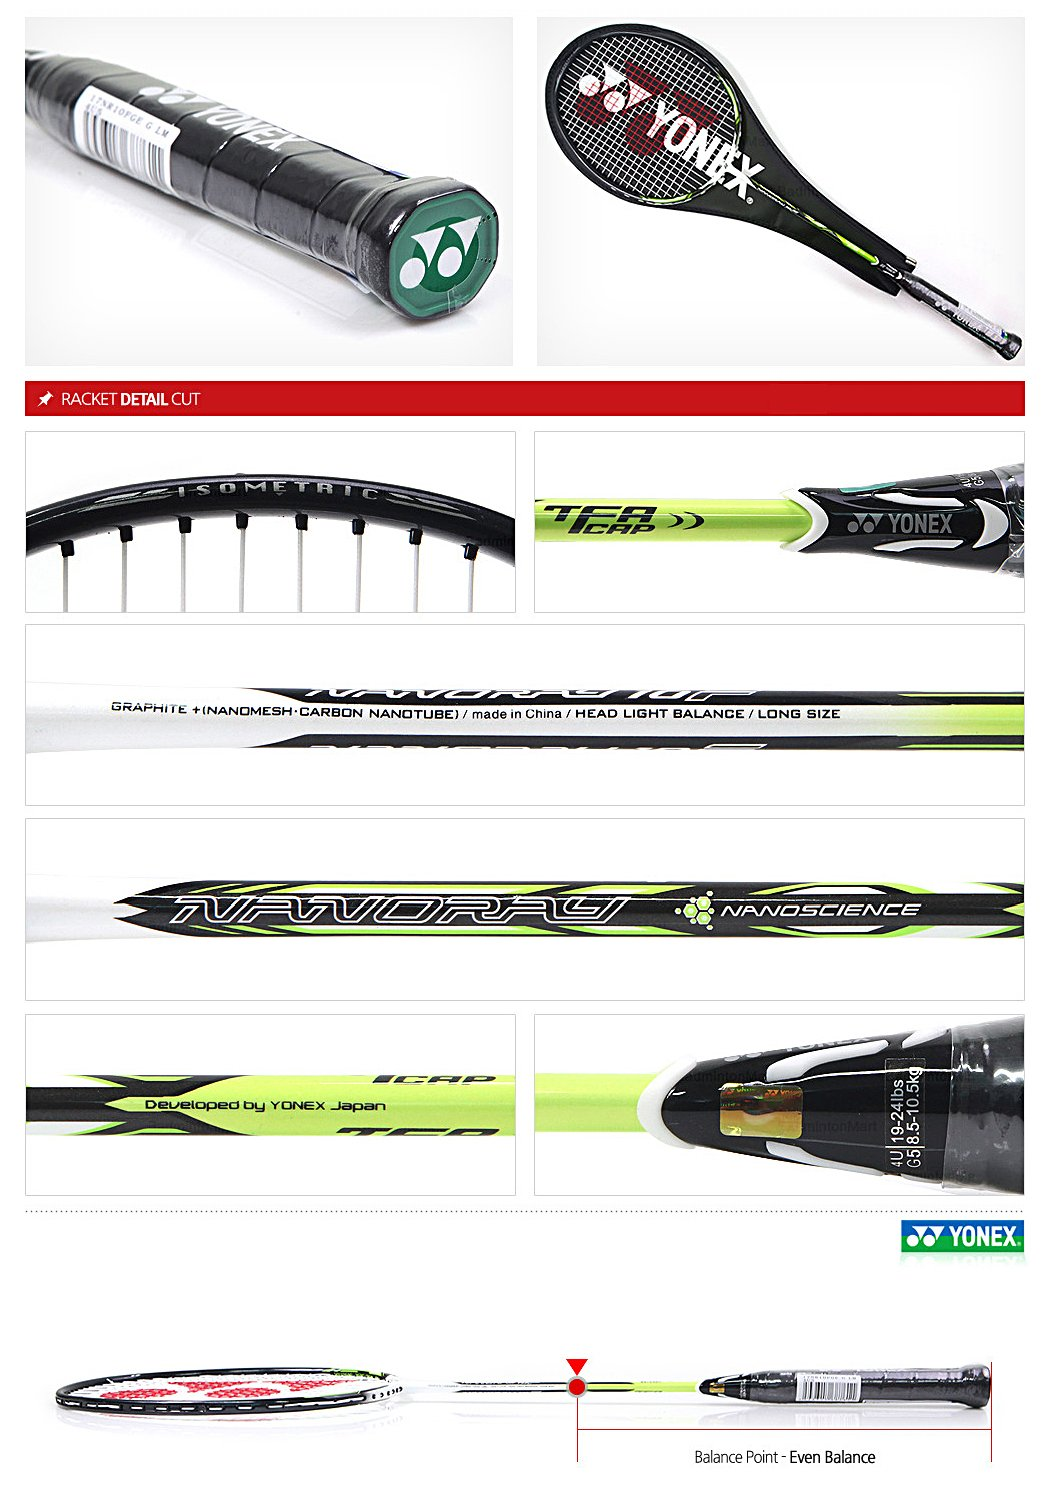 Yonex NANORAY 10F NEW Badminton Racket 2017 Racquet Lime 4U/G5 Pre-strung with a Half-length Cover (NR10F-LIME) by Yonex (Image #4)